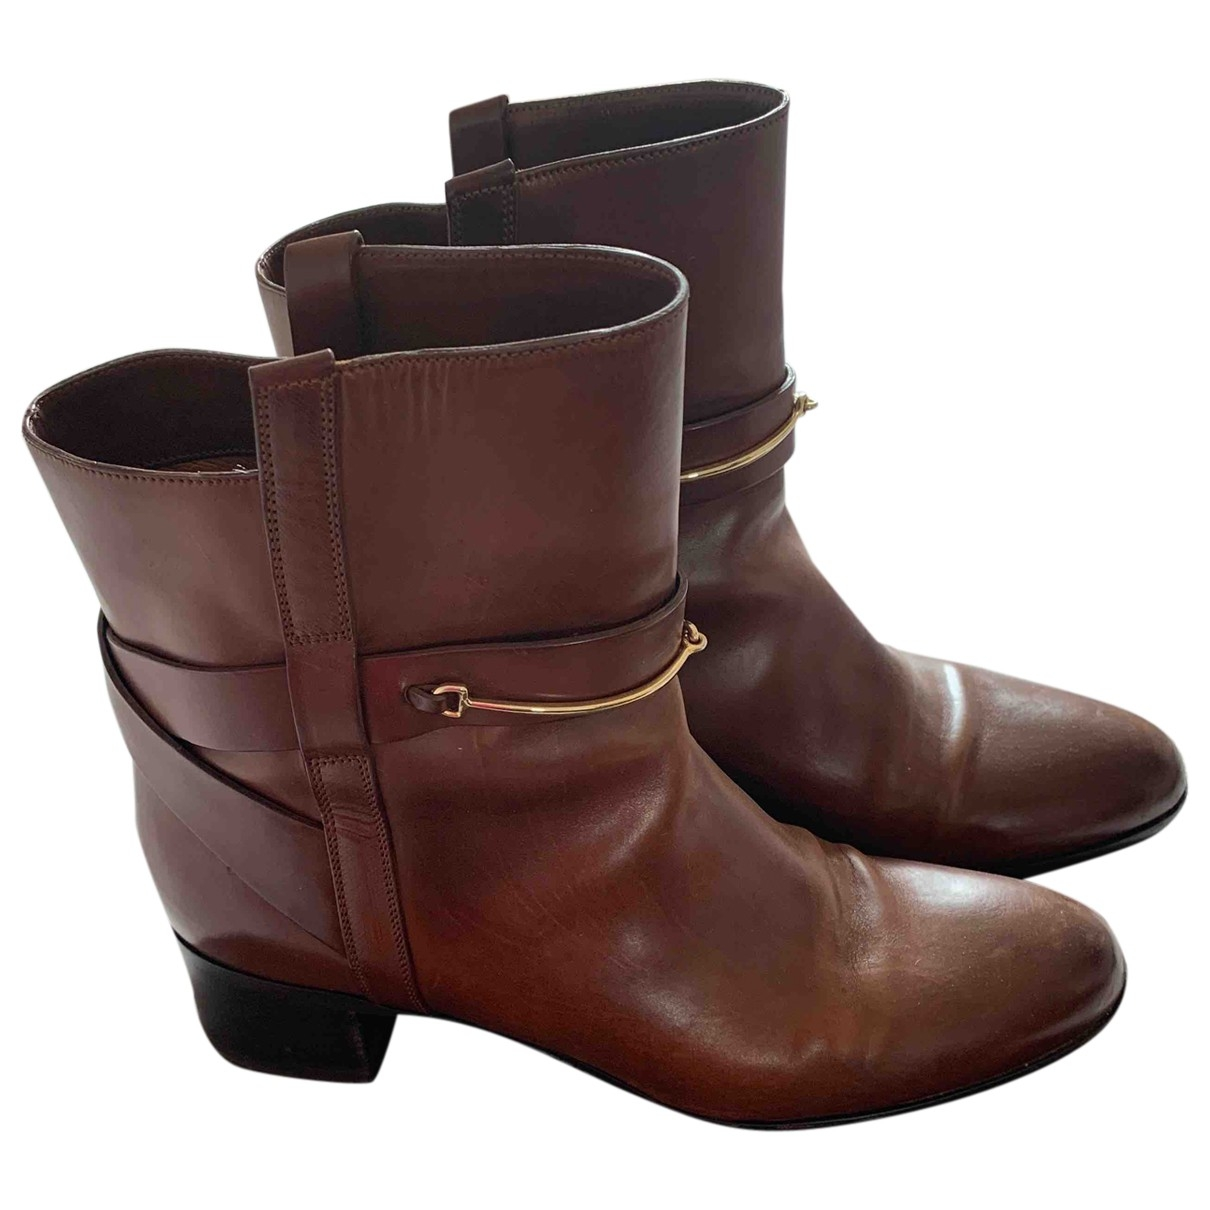 Sartore \N Brown Leather Ankle boots for Women 39.5 EU